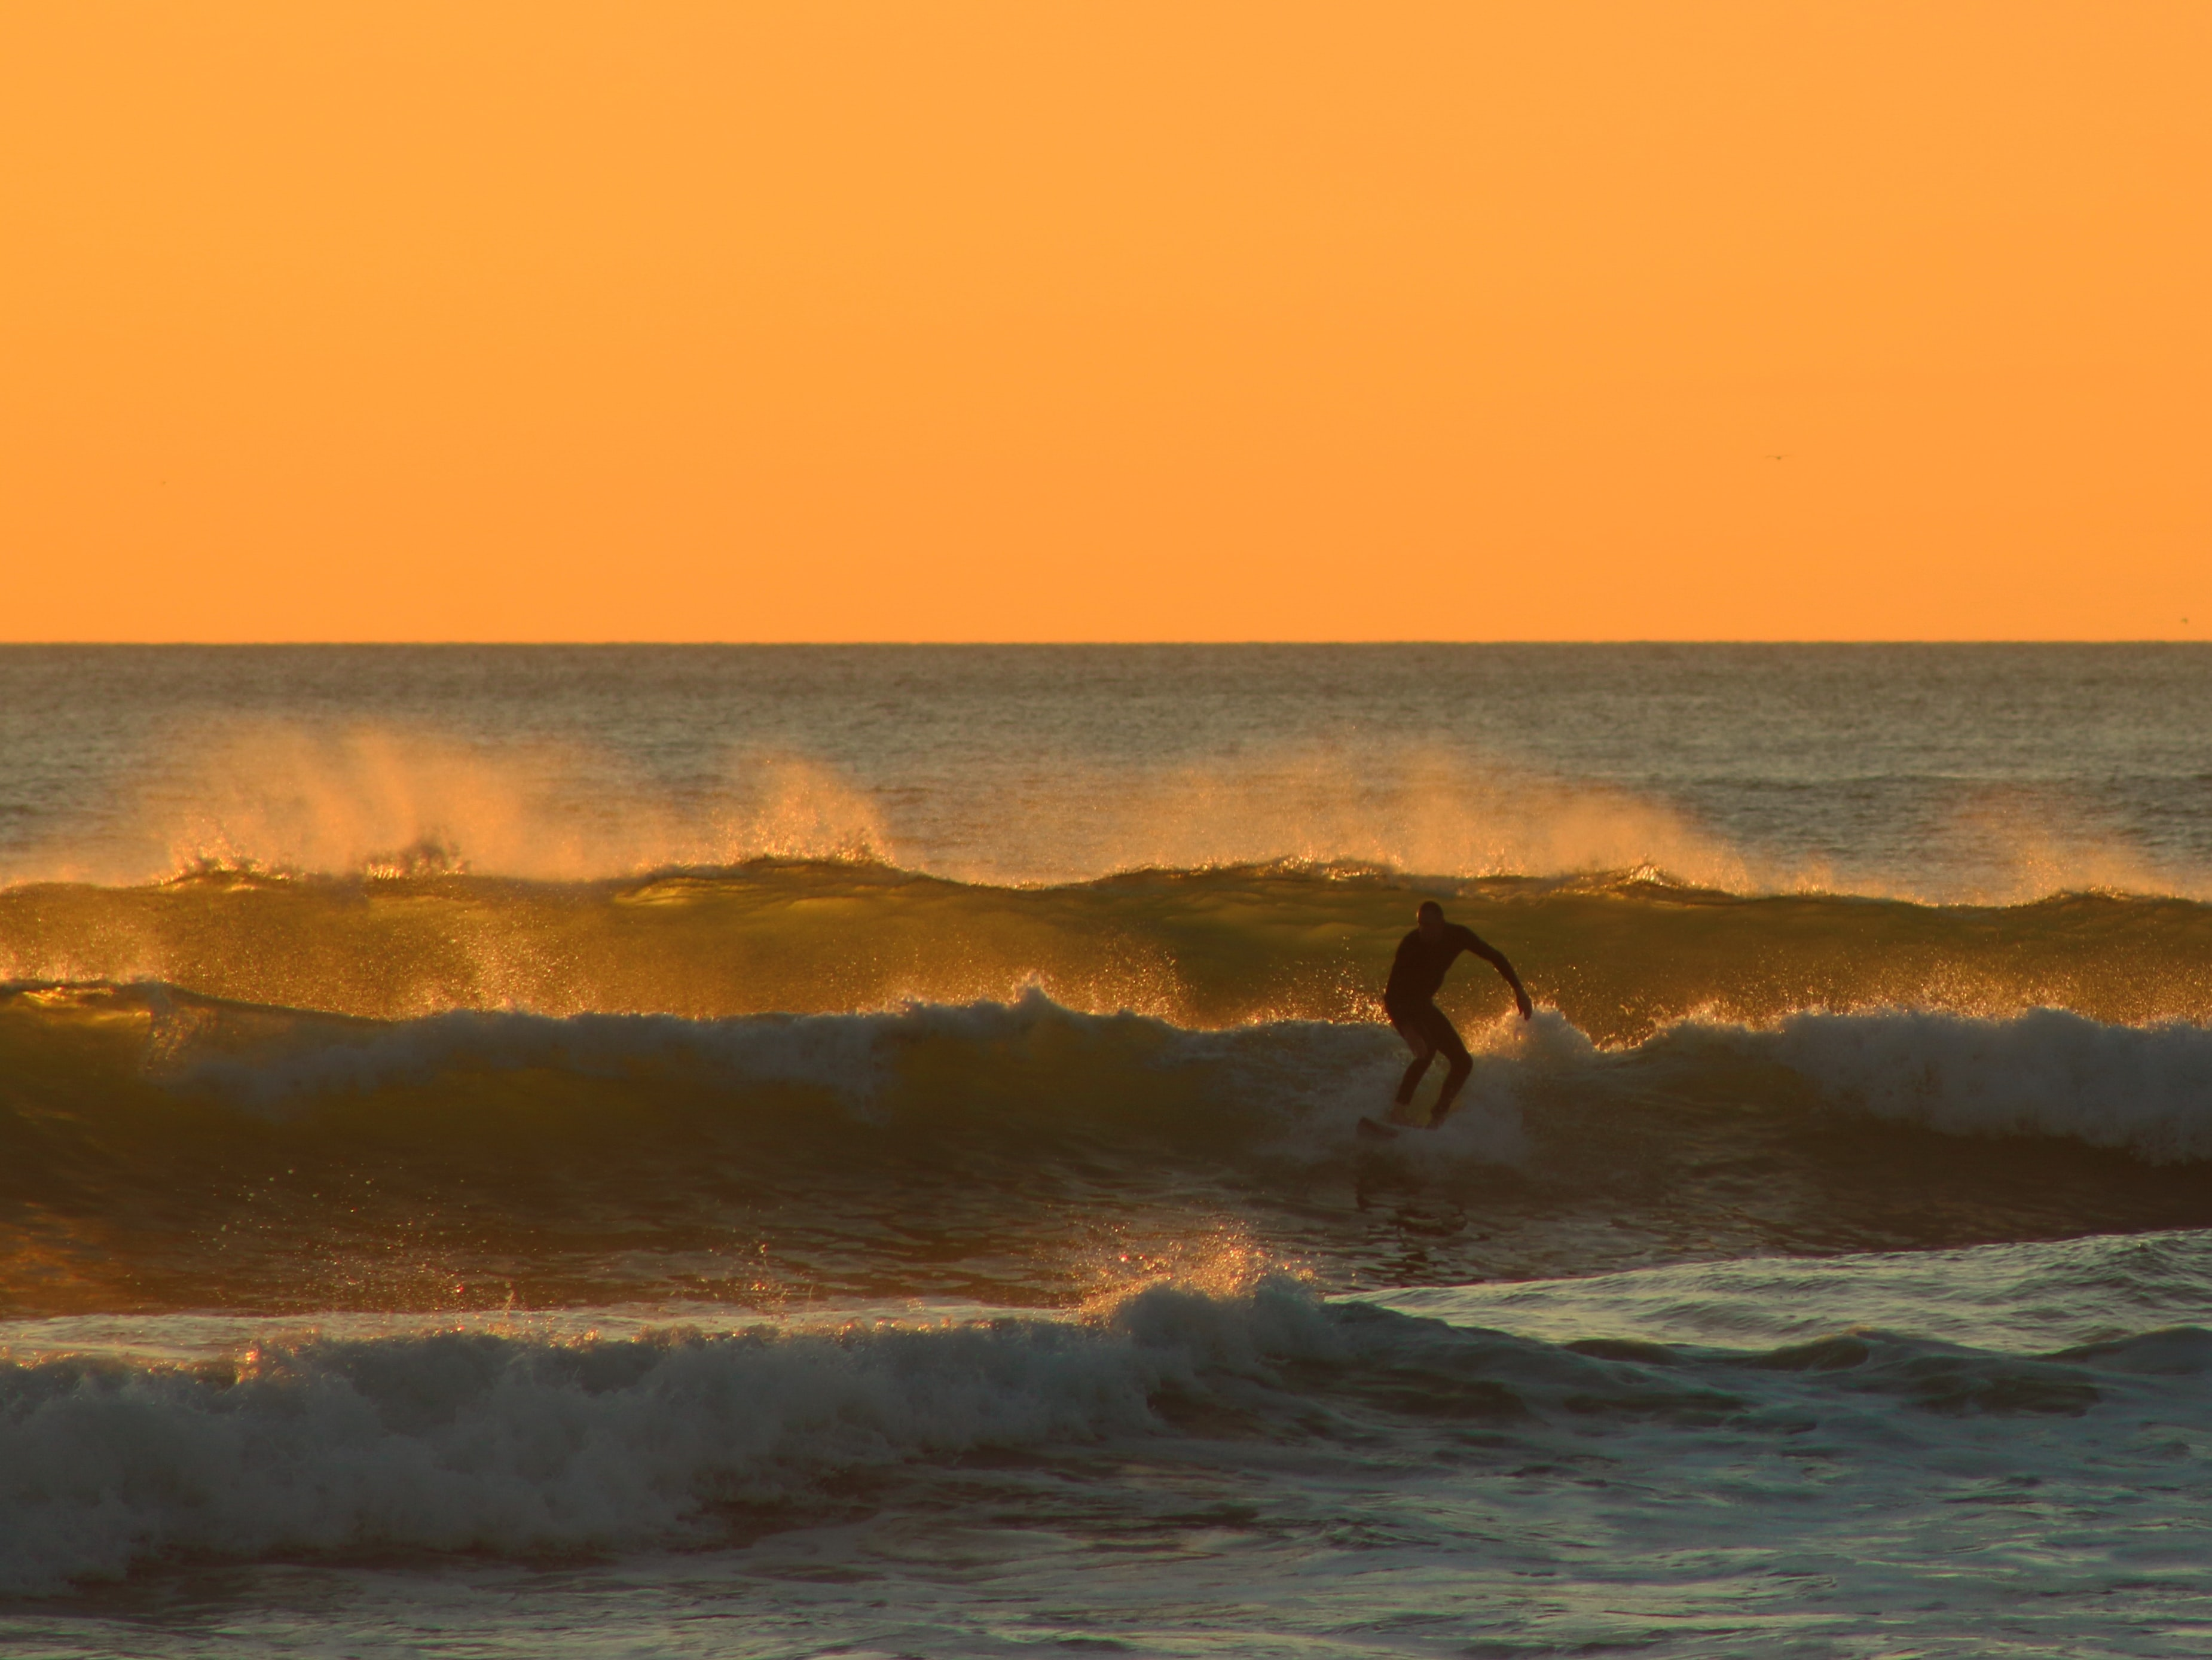 man surfing under yellow sky during daytime